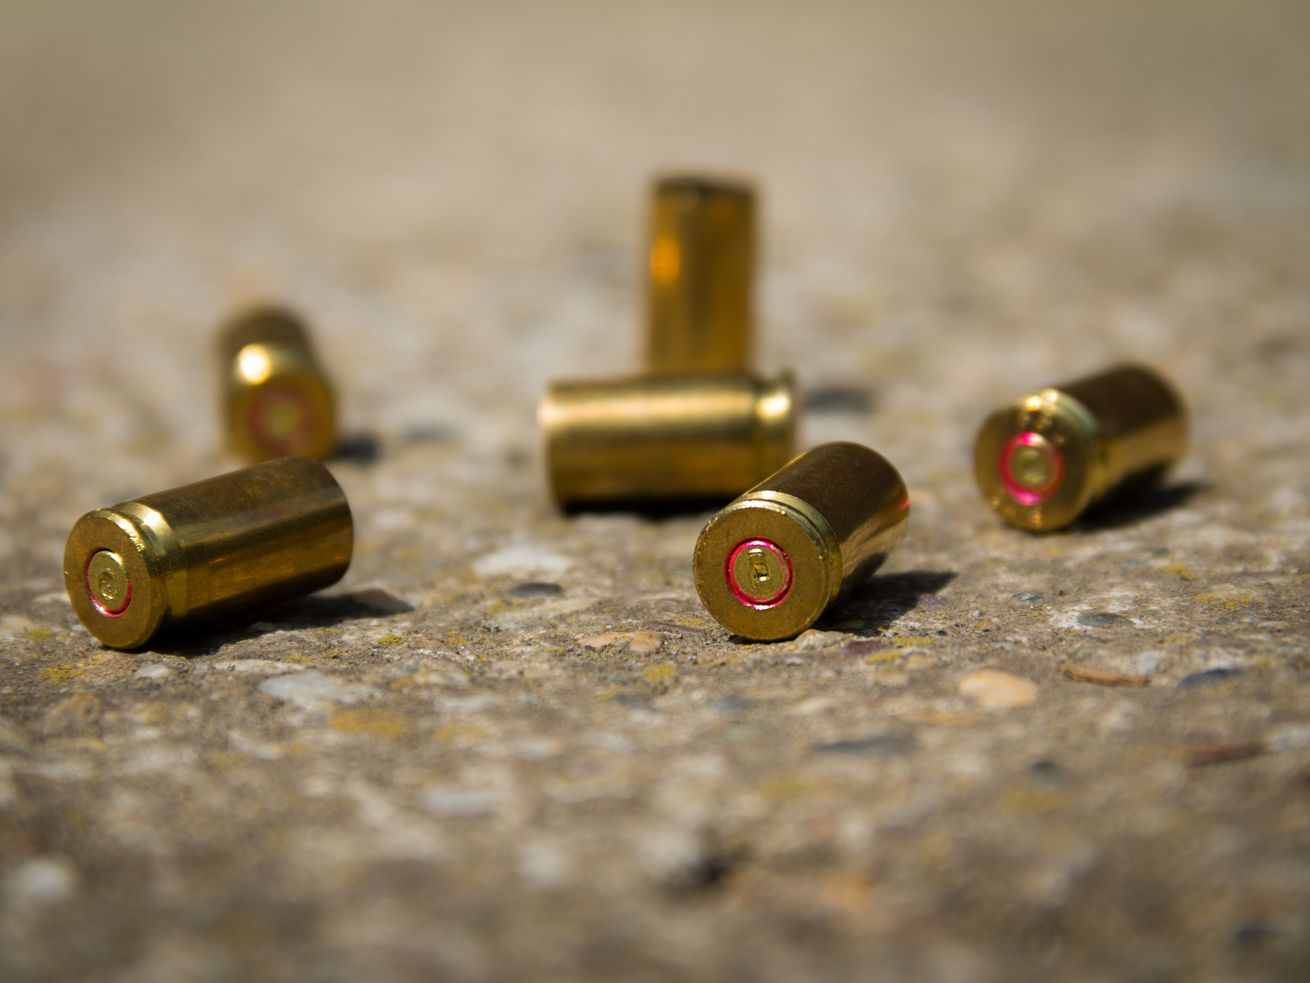 A 17-year-old boy was shot June 14, 2019, in the 10400 block of South Avenue J.